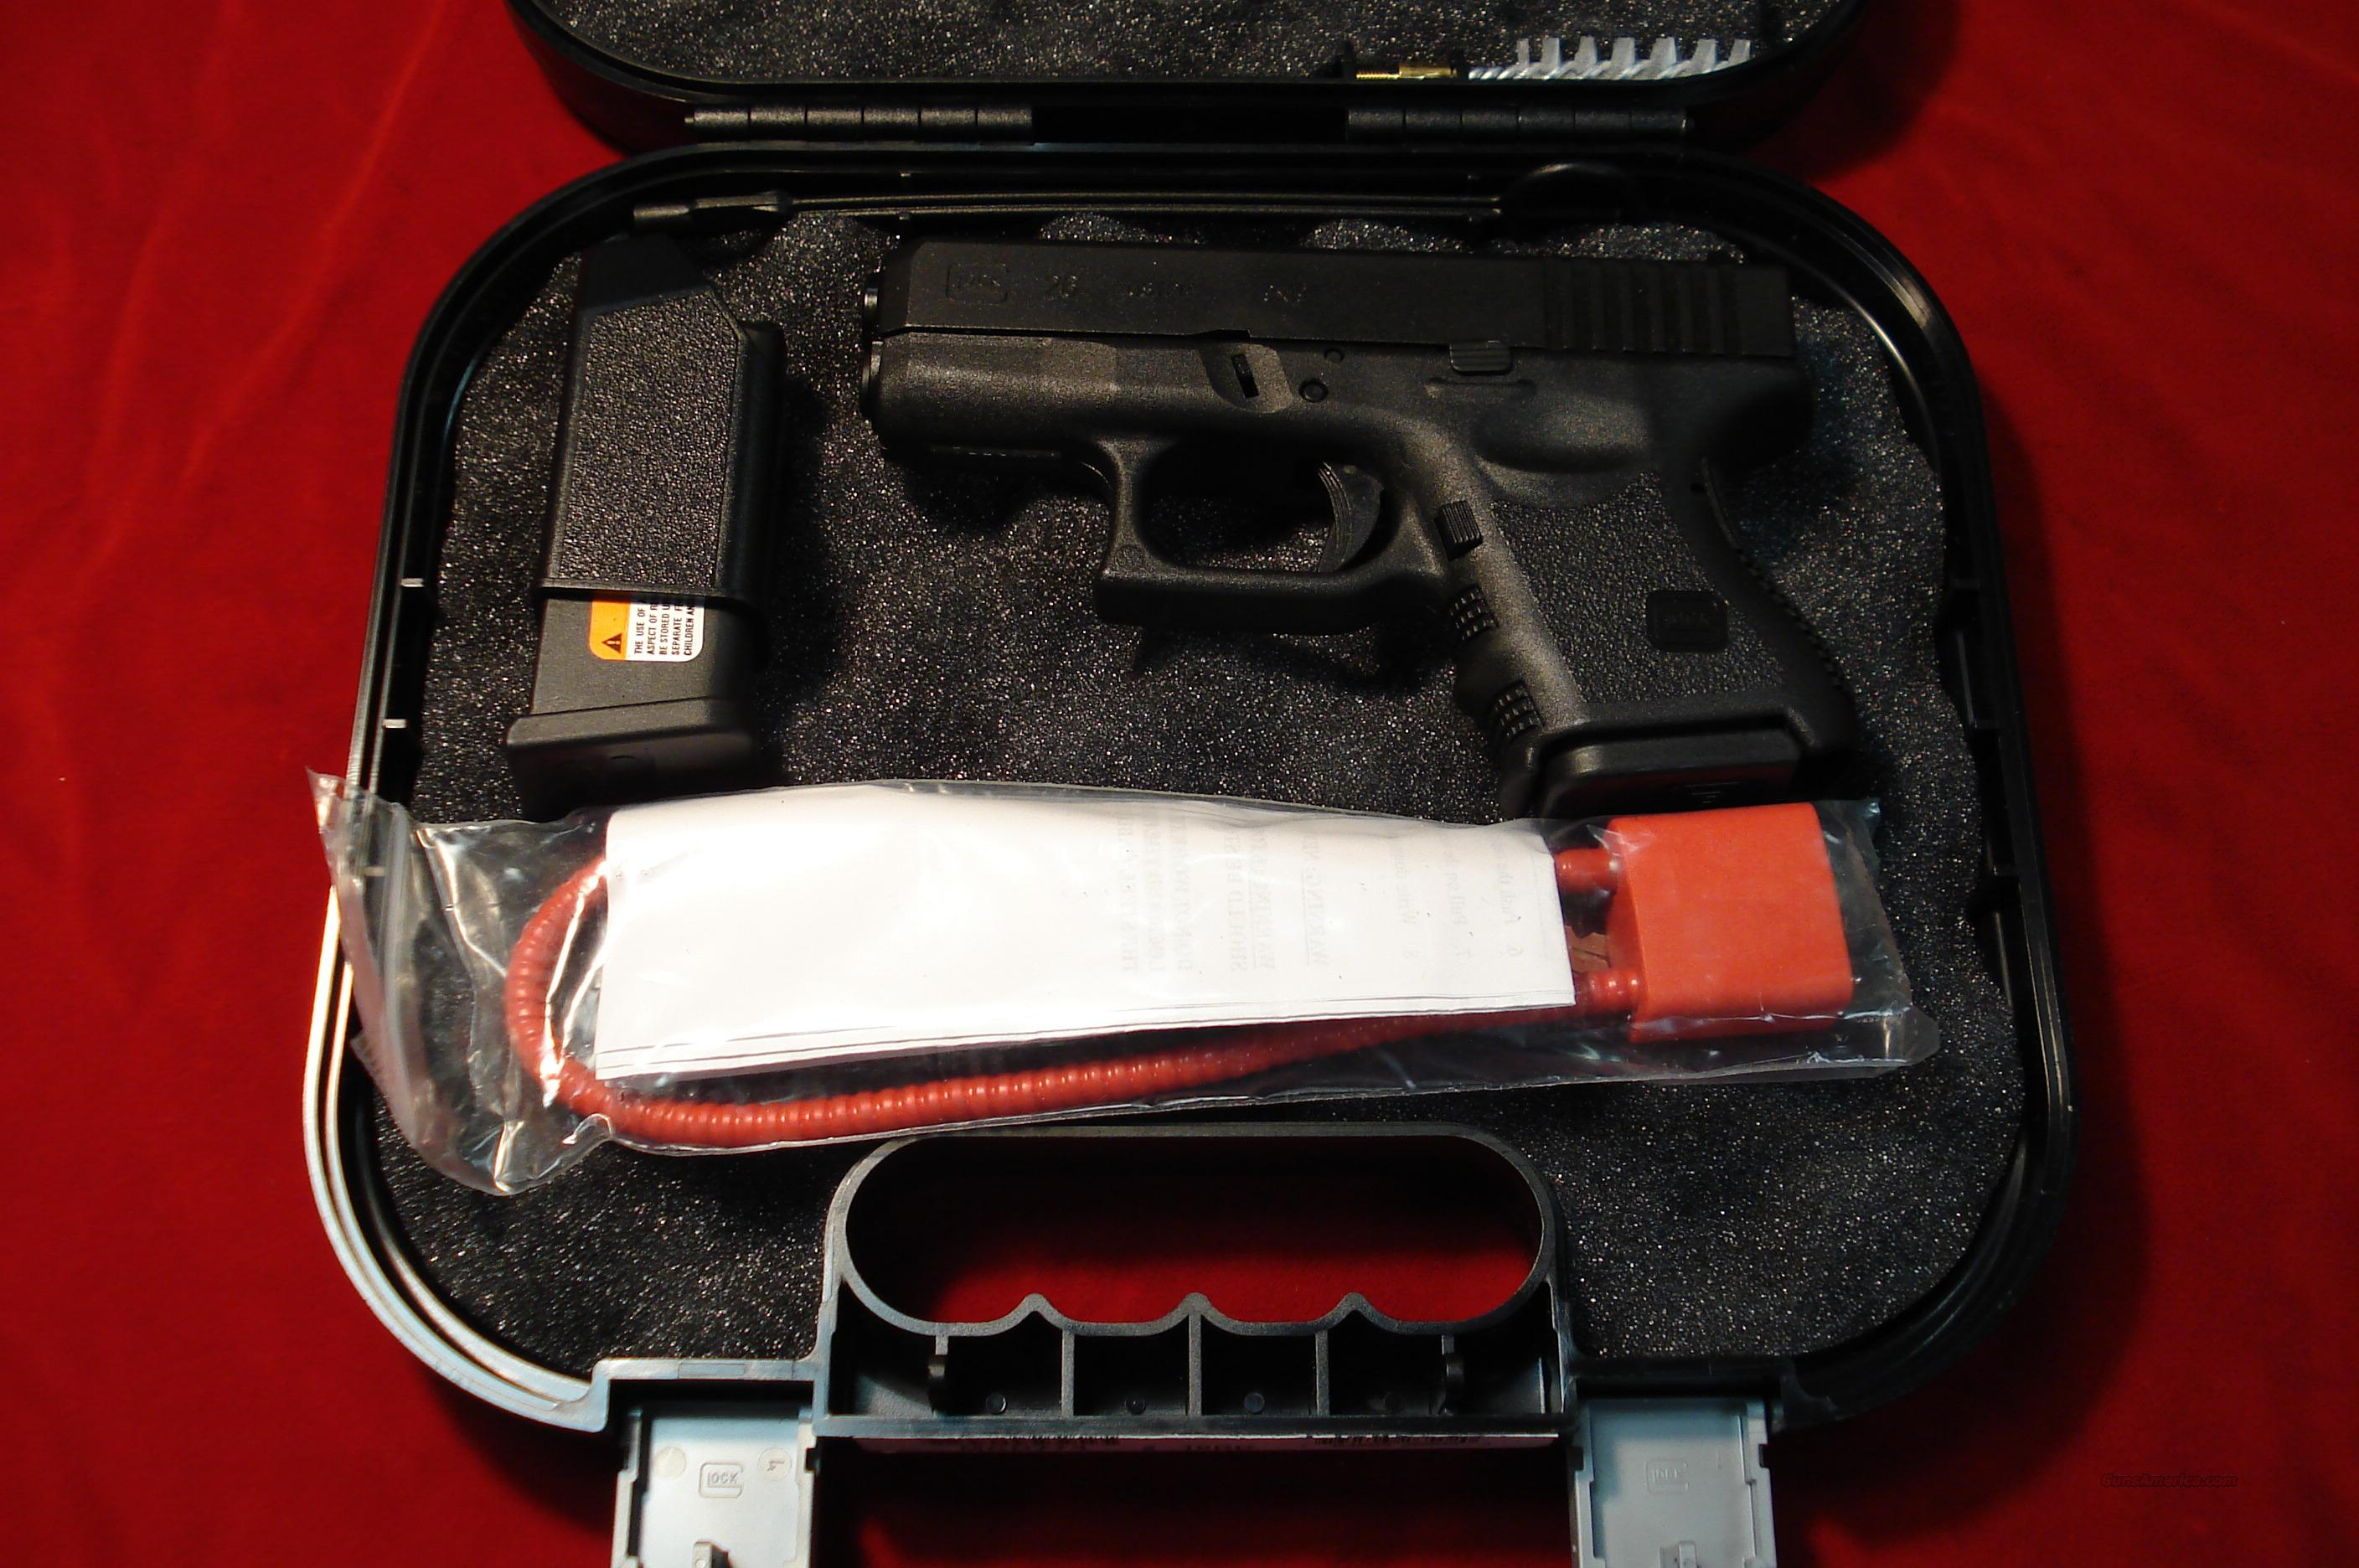 GLOCK #26 9MM NEW IN THE BOX  Guns > Pistols > Glock Pistols > 26/27